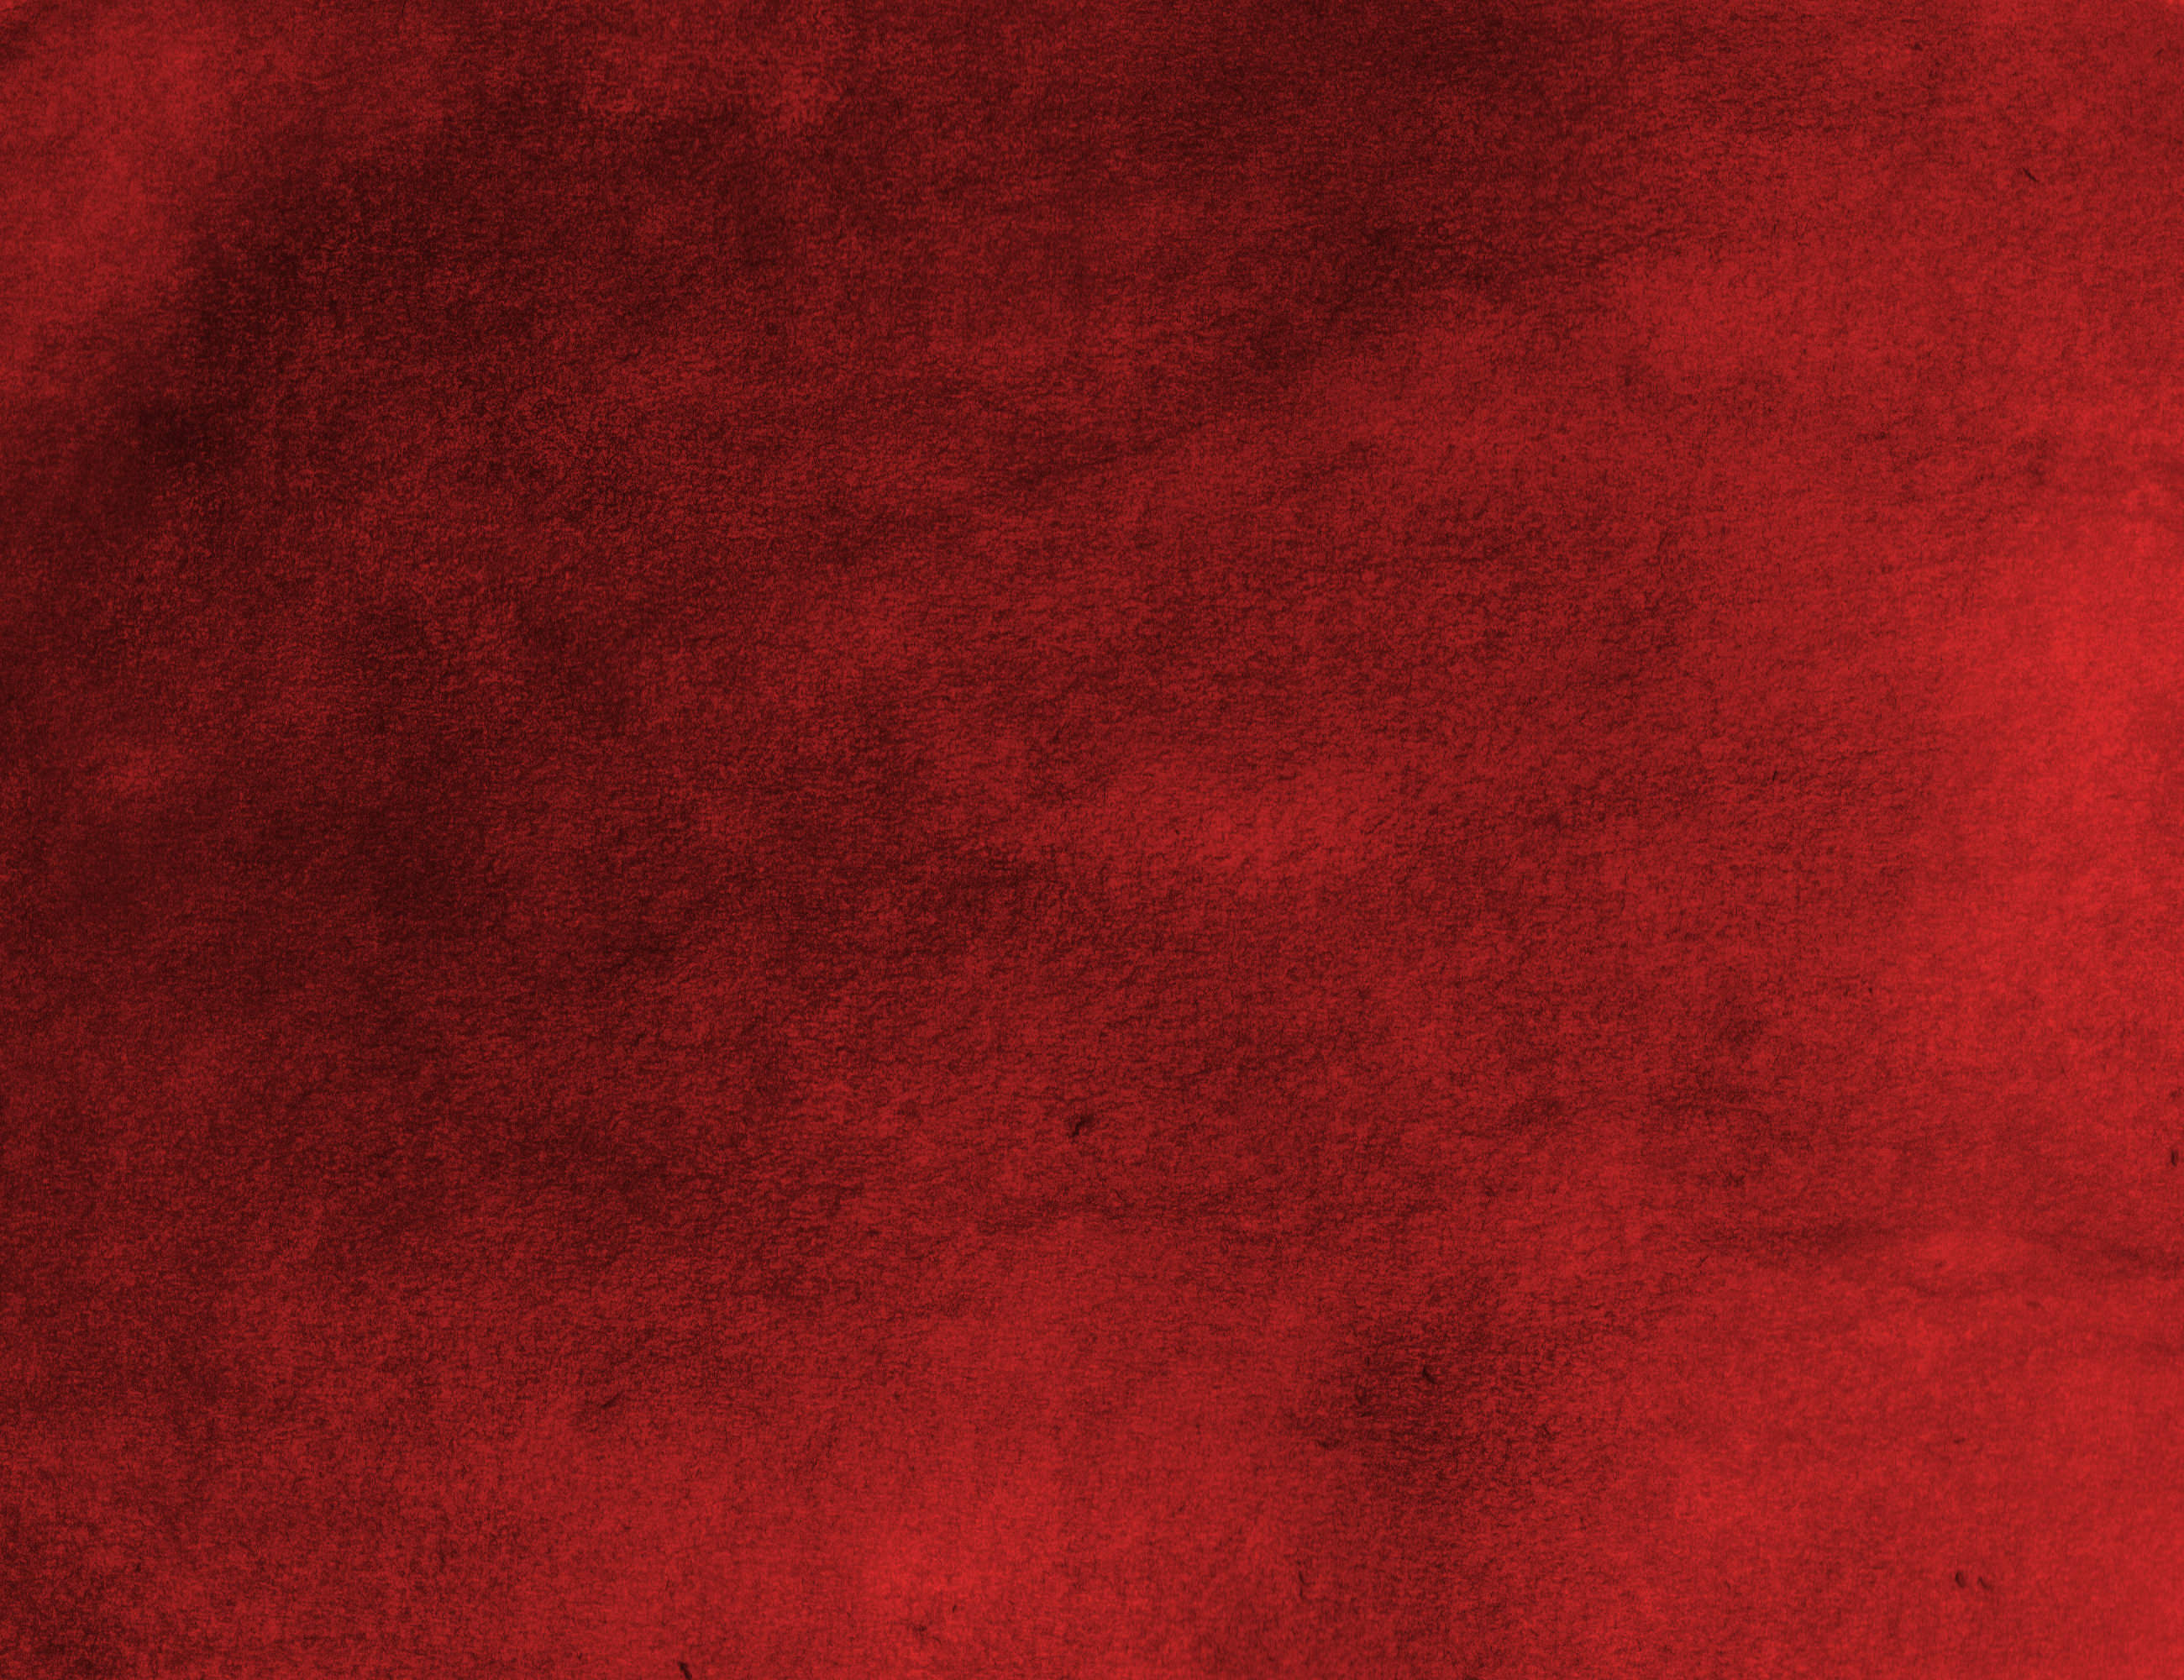 Http Www Onlygfx Com 6 Dark Red Watercolor Textures Jpg